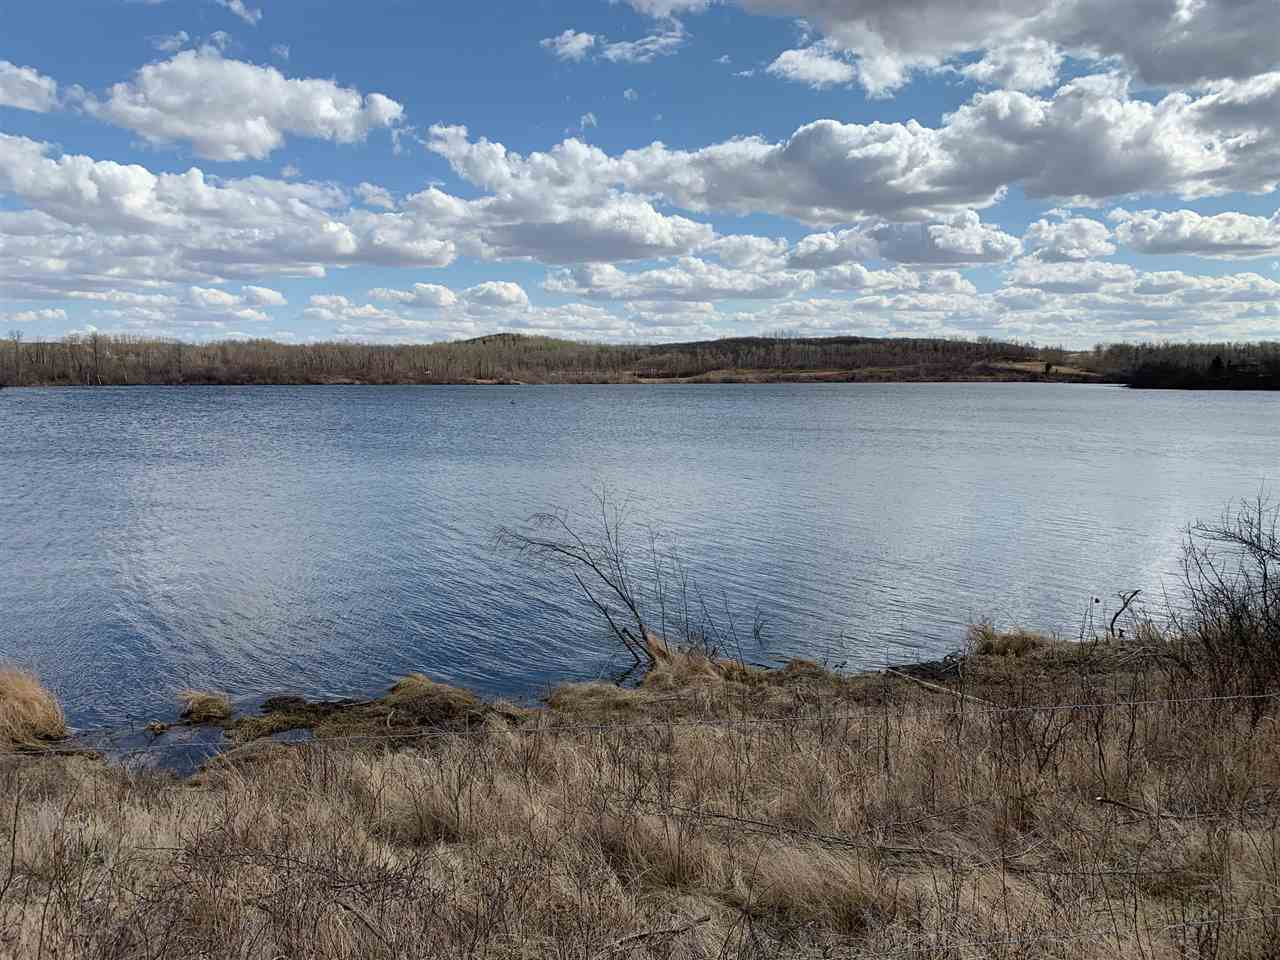 Main Photo: LOT #38 Fish Lake: Rural Flagstaff County Rural Land/Vacant Lot for sale : MLS®# E4194700